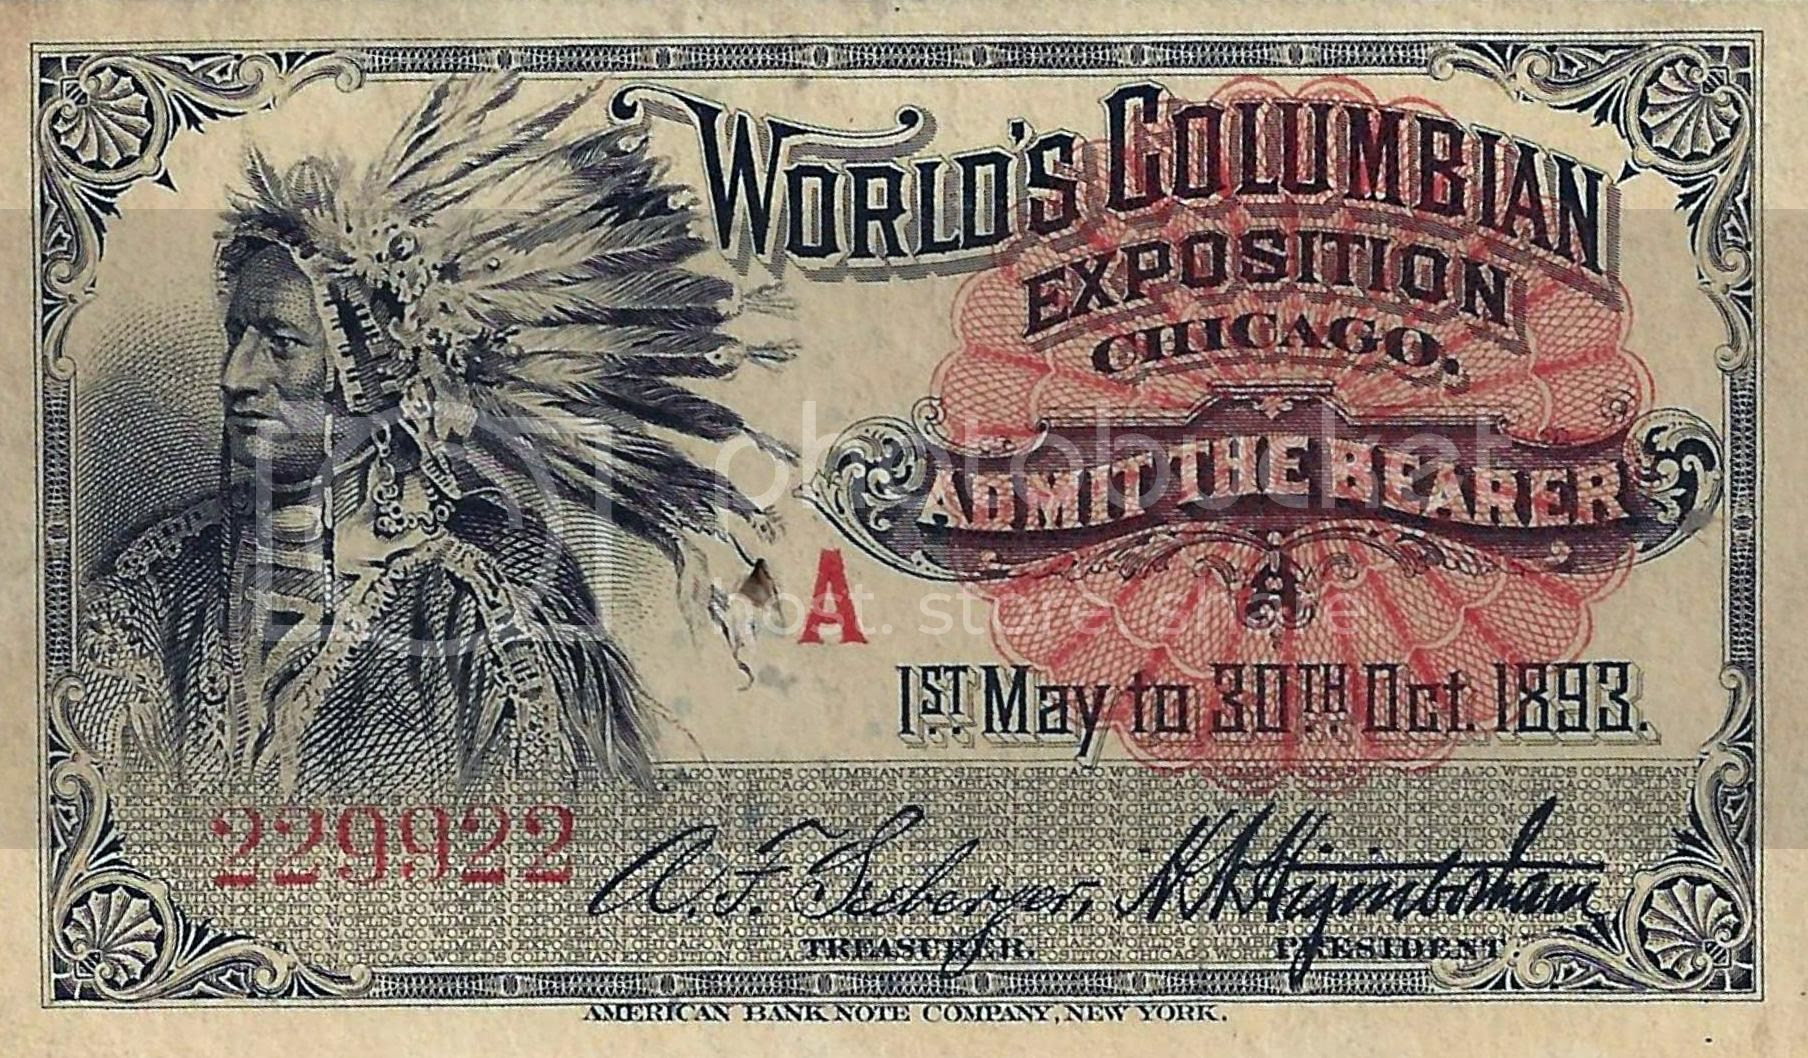 World's Columbian Exposition Chicago Indian photo worldscolumbianexpositionchicago1893indianticket_zps4b40c9ed.jpg